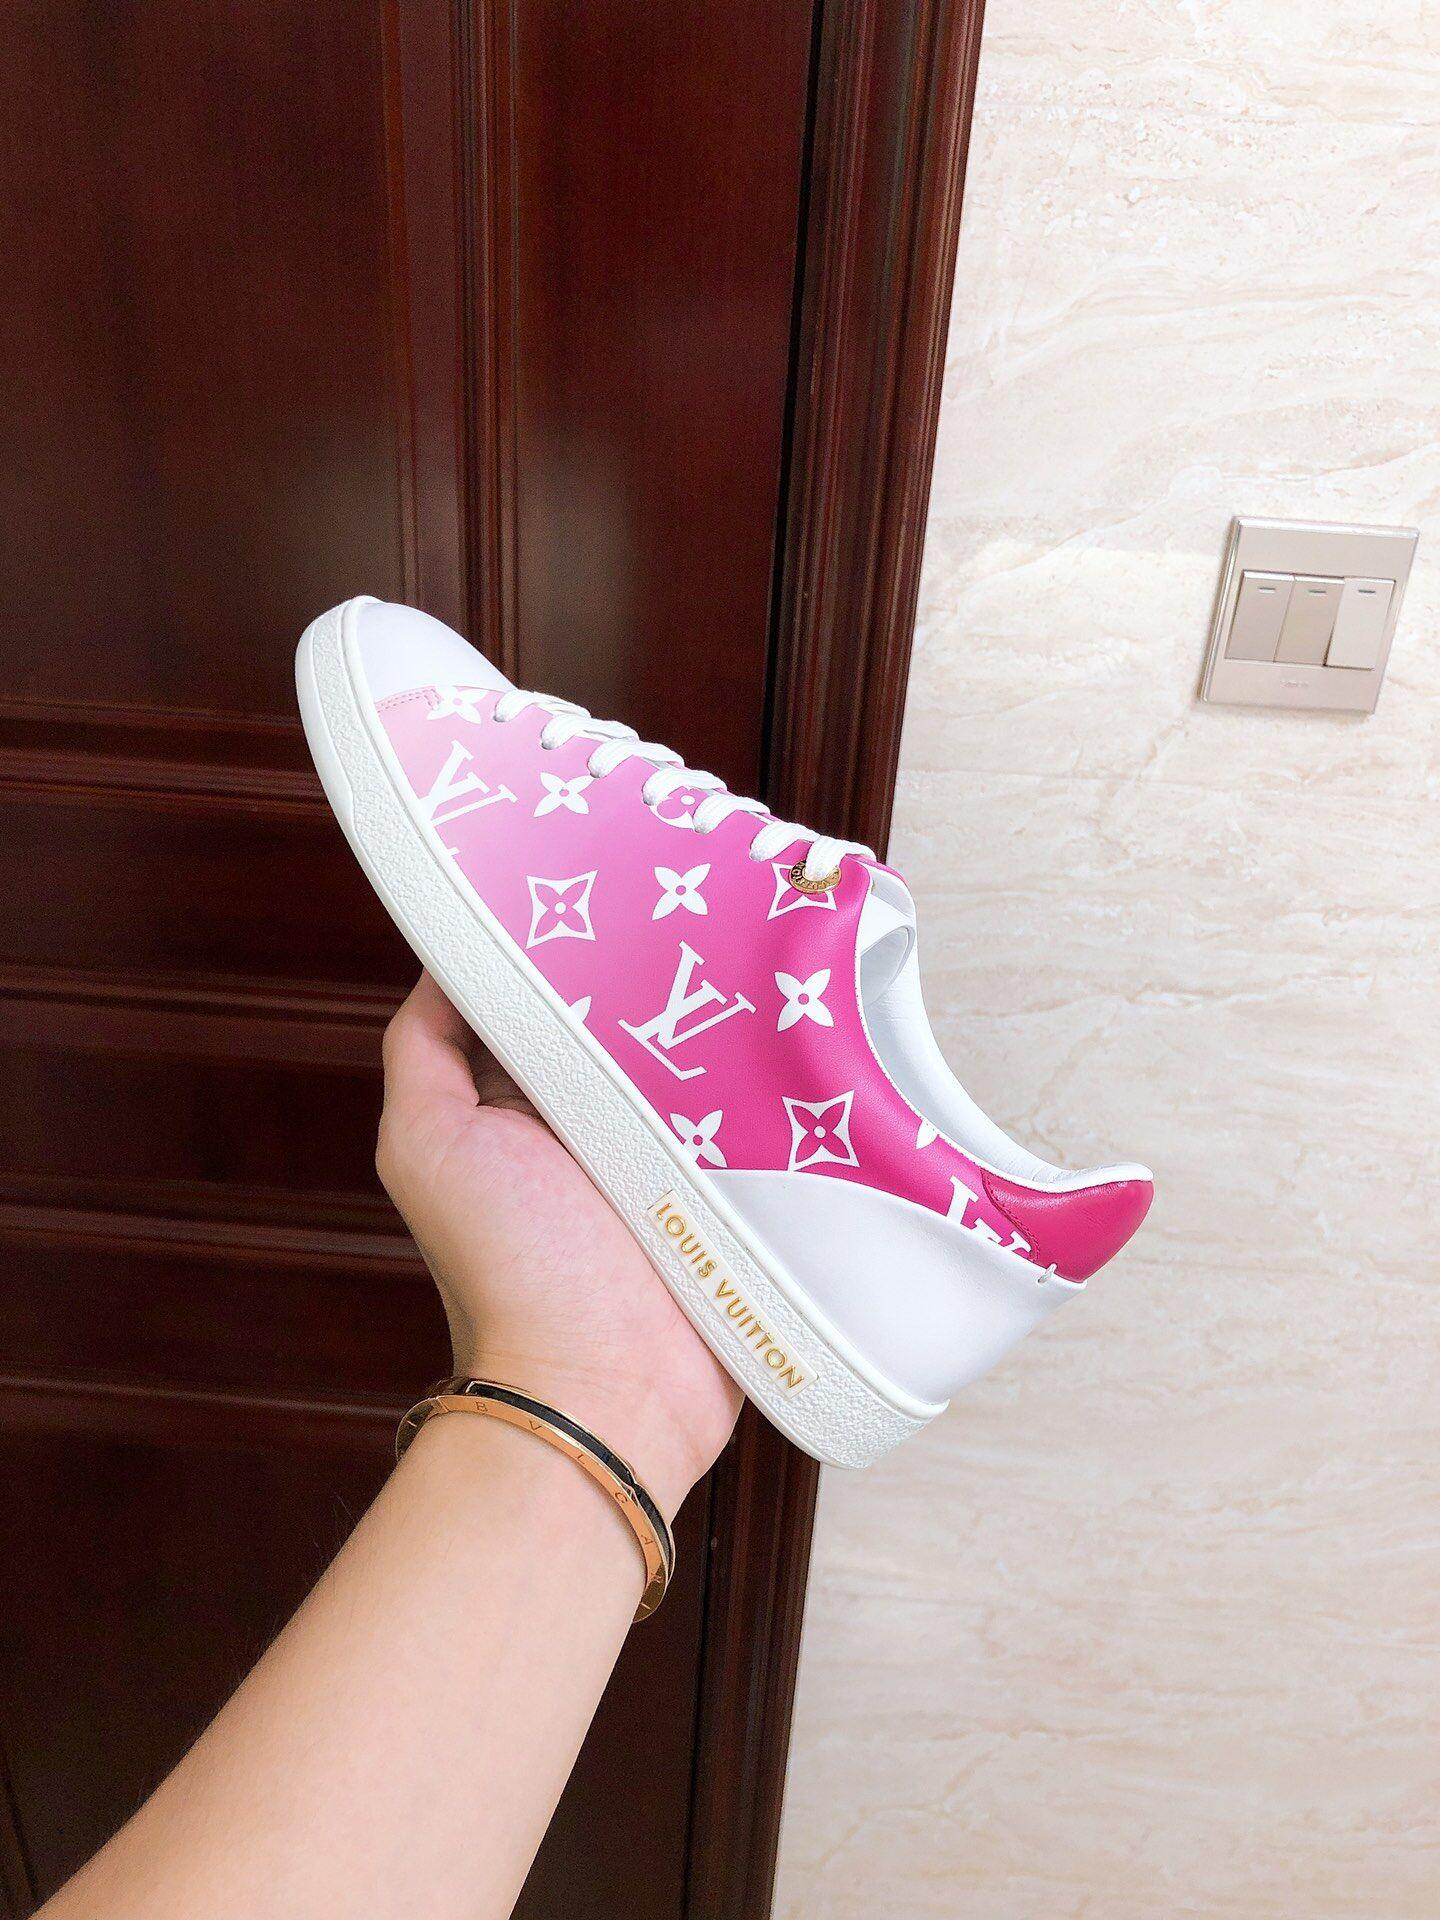 frontrow sneaker    sneaker    women shoes    pink  shoes 1A87CE  5